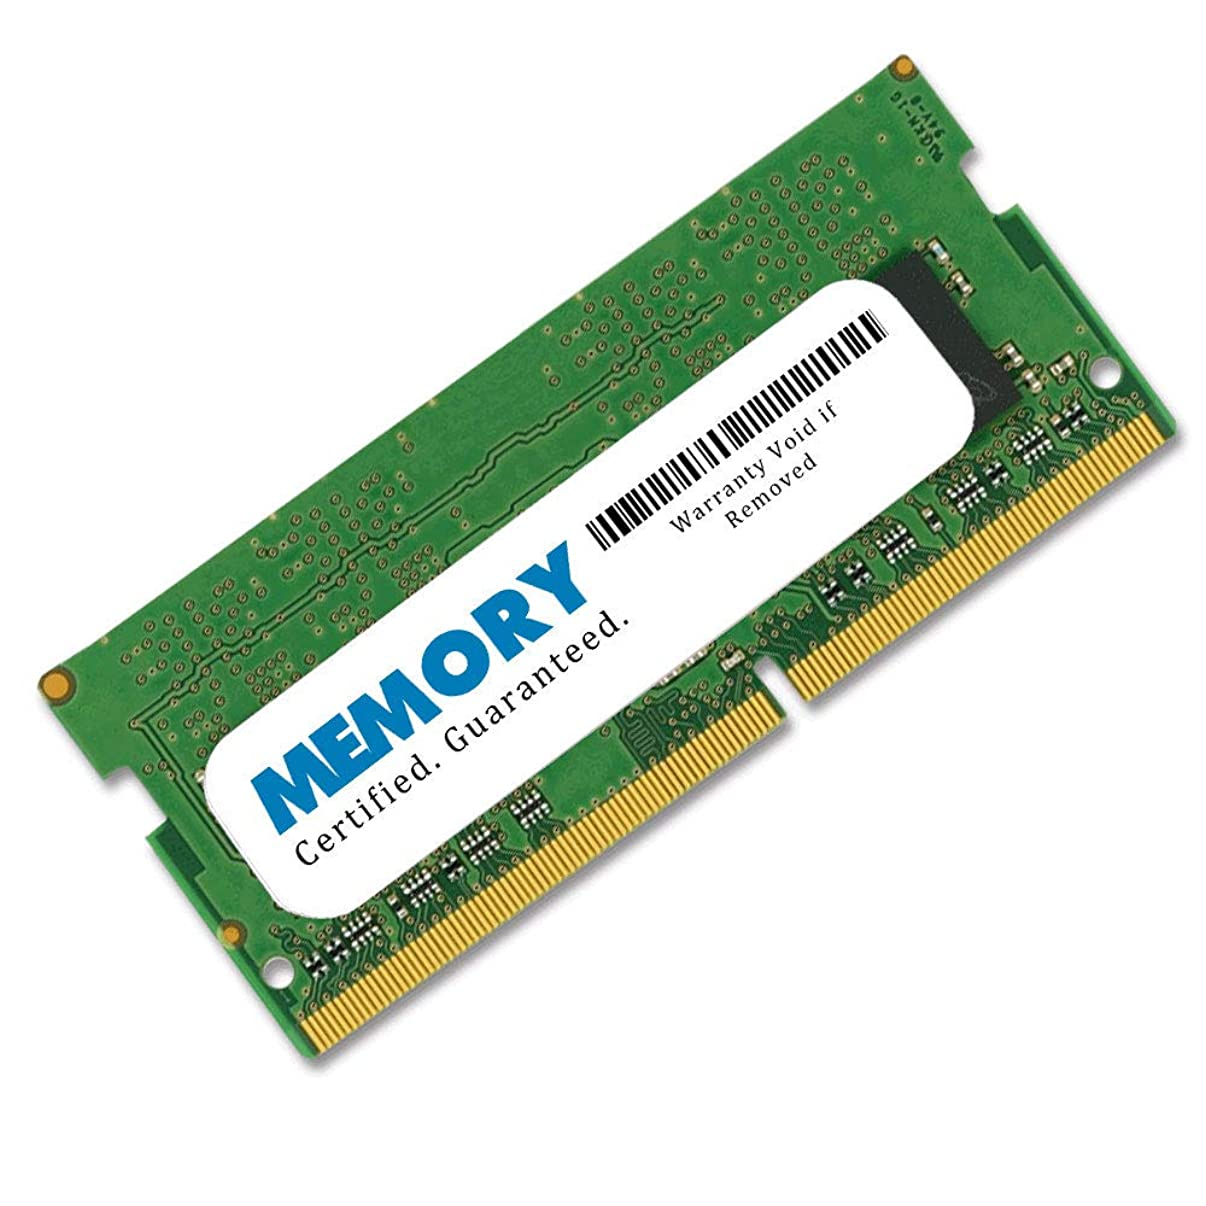 Arch Memory 8GB Replacement for Dell SNPMKYF9C/8G A9210967 260-Pin DDR4 So-dimm RAM for Dell Inspiron 15 5000 Series (5567)